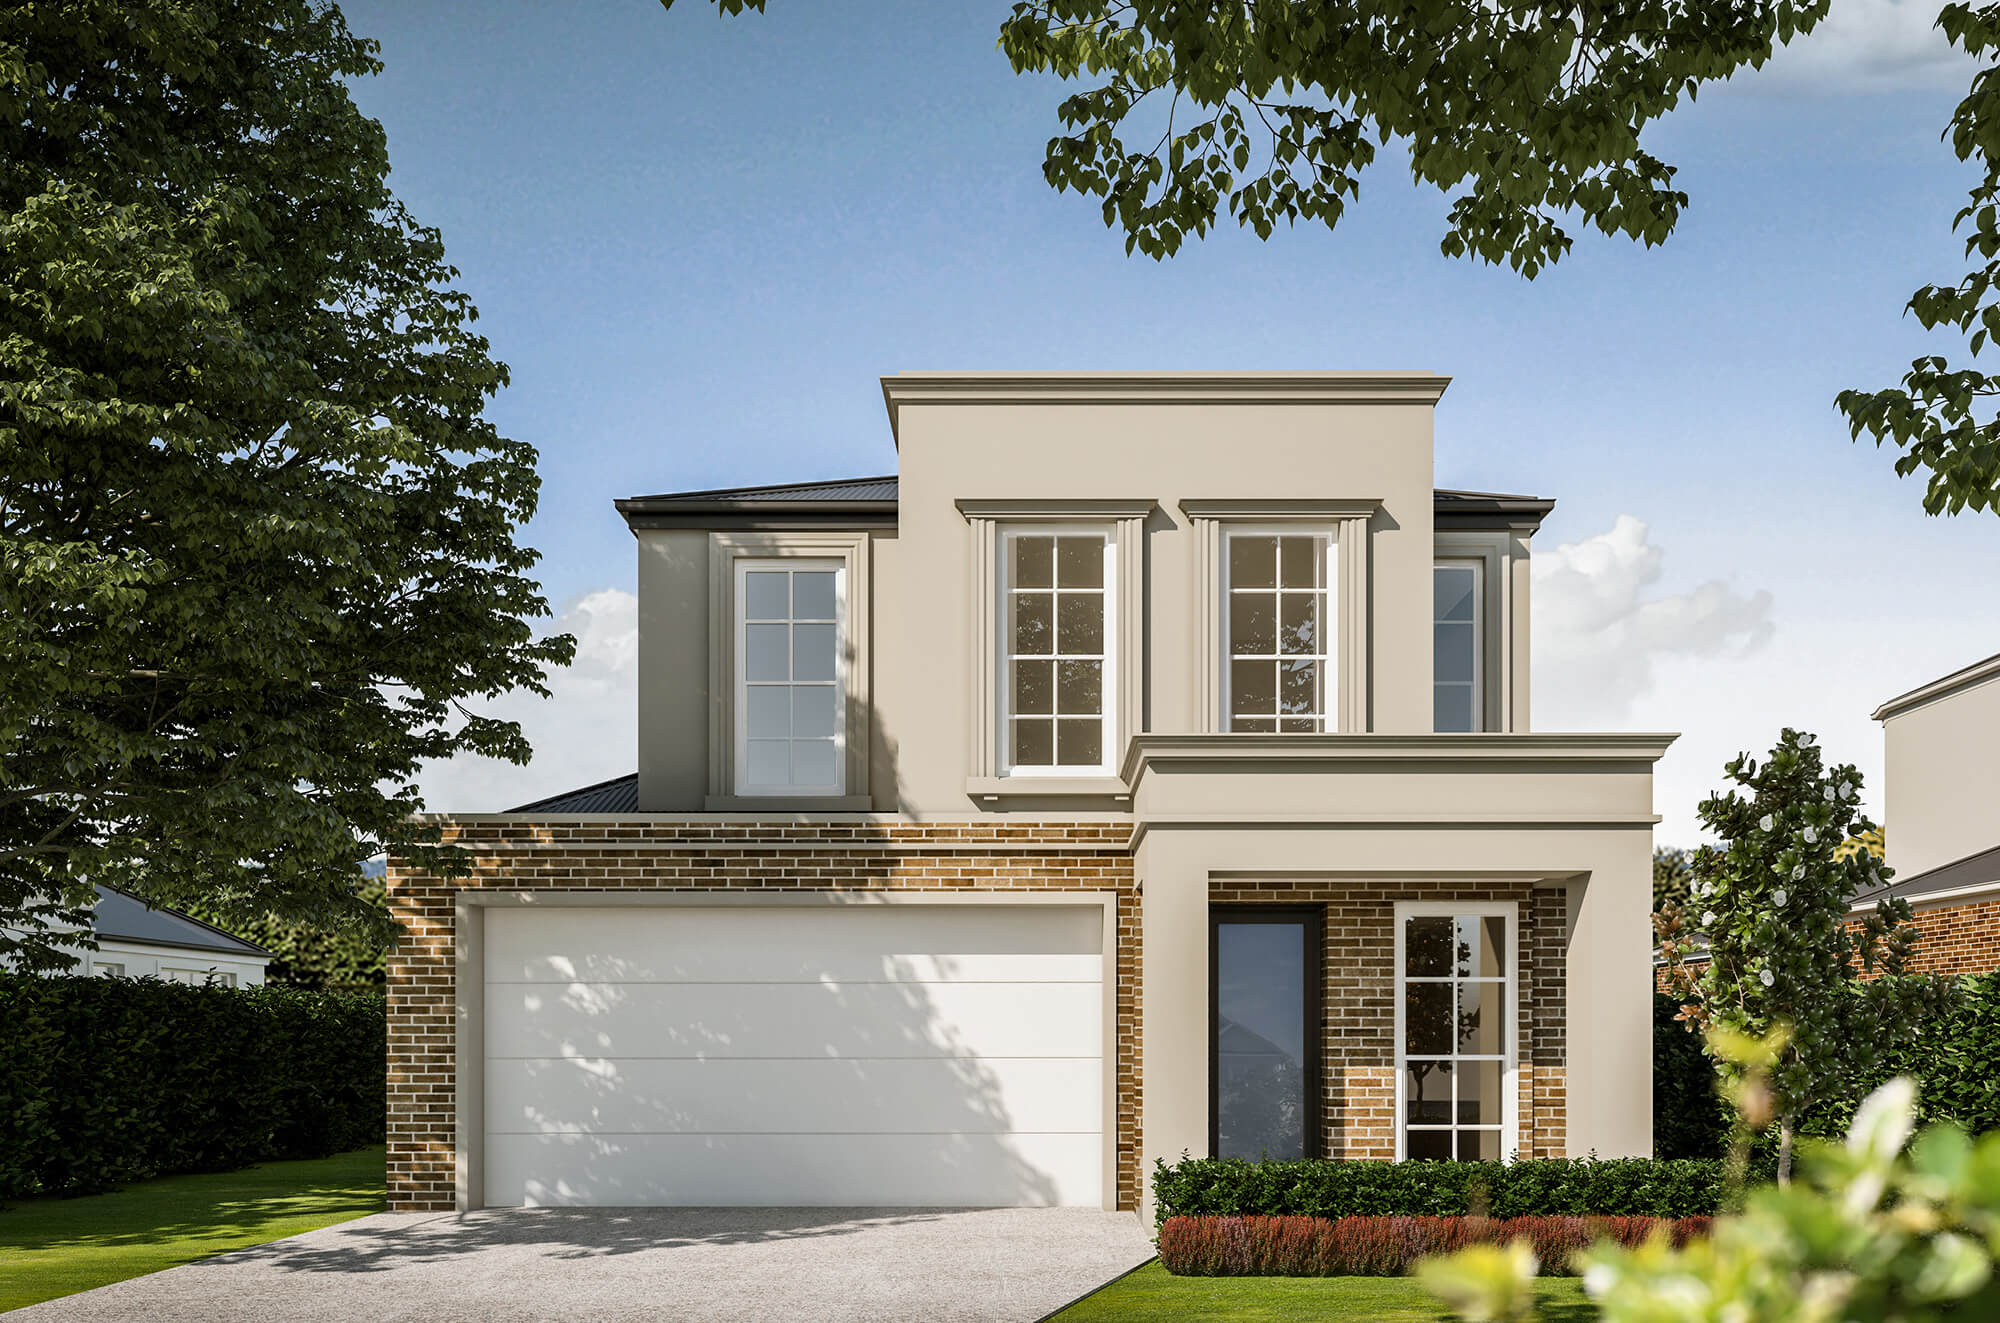 22 George Street Vale Park Custom Home & Land Package For Sale